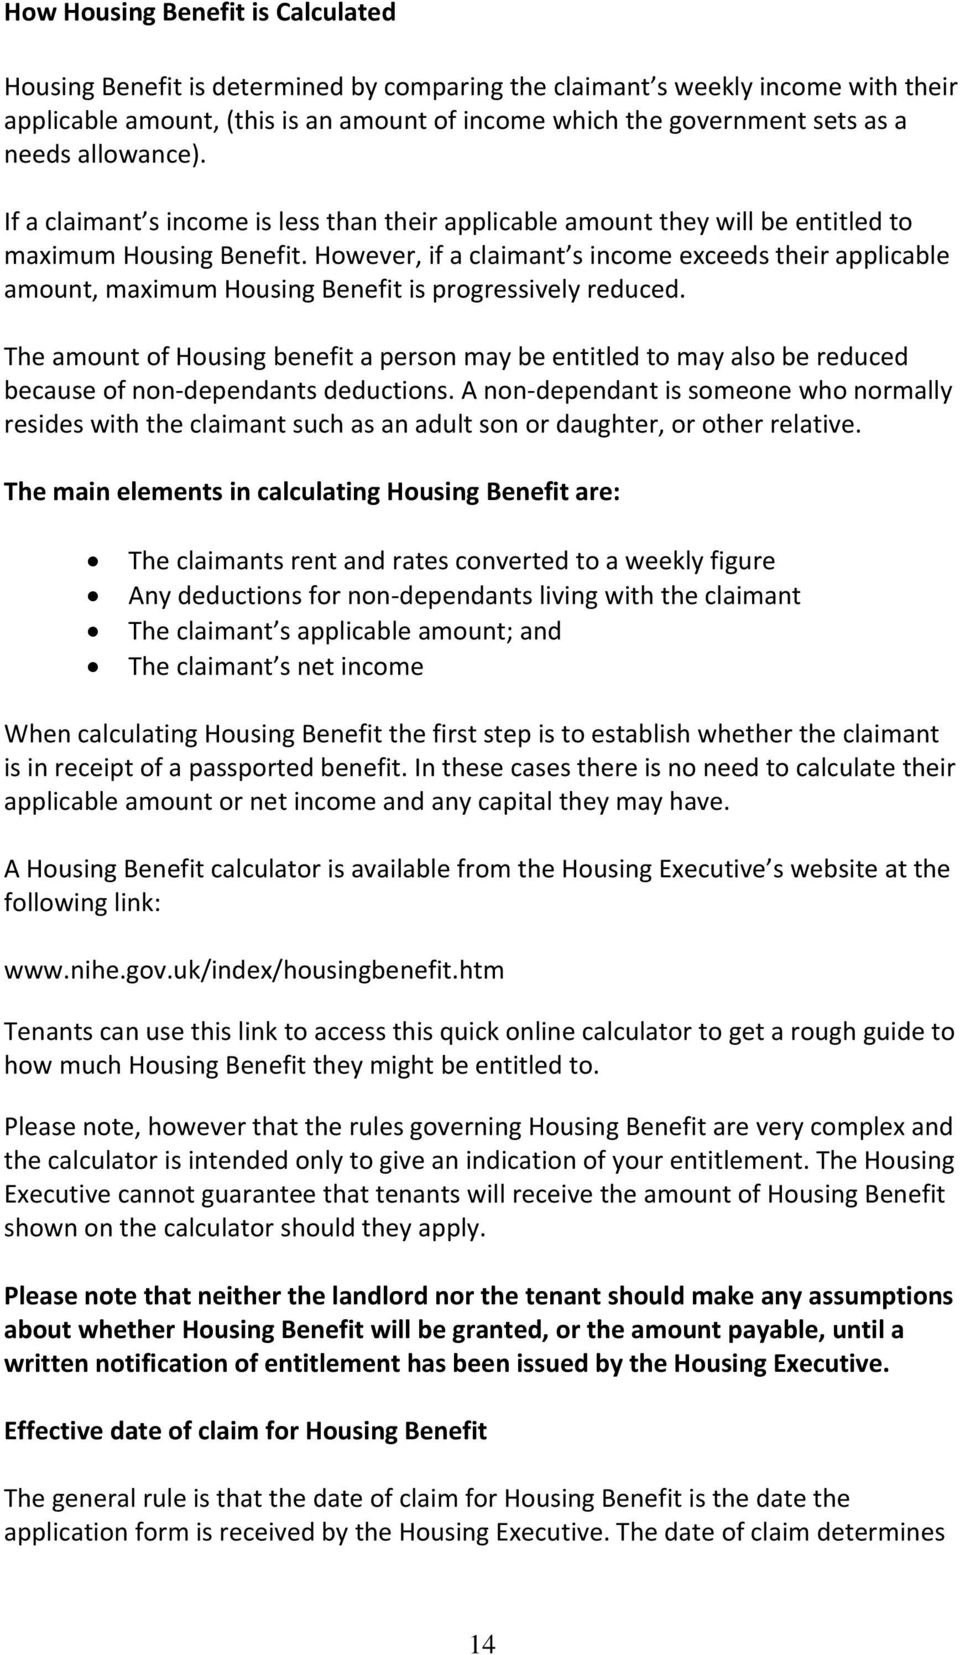 However, if a claimant s income exceeds their applicable amount, maximum Housing Benefit is progressively reduced.